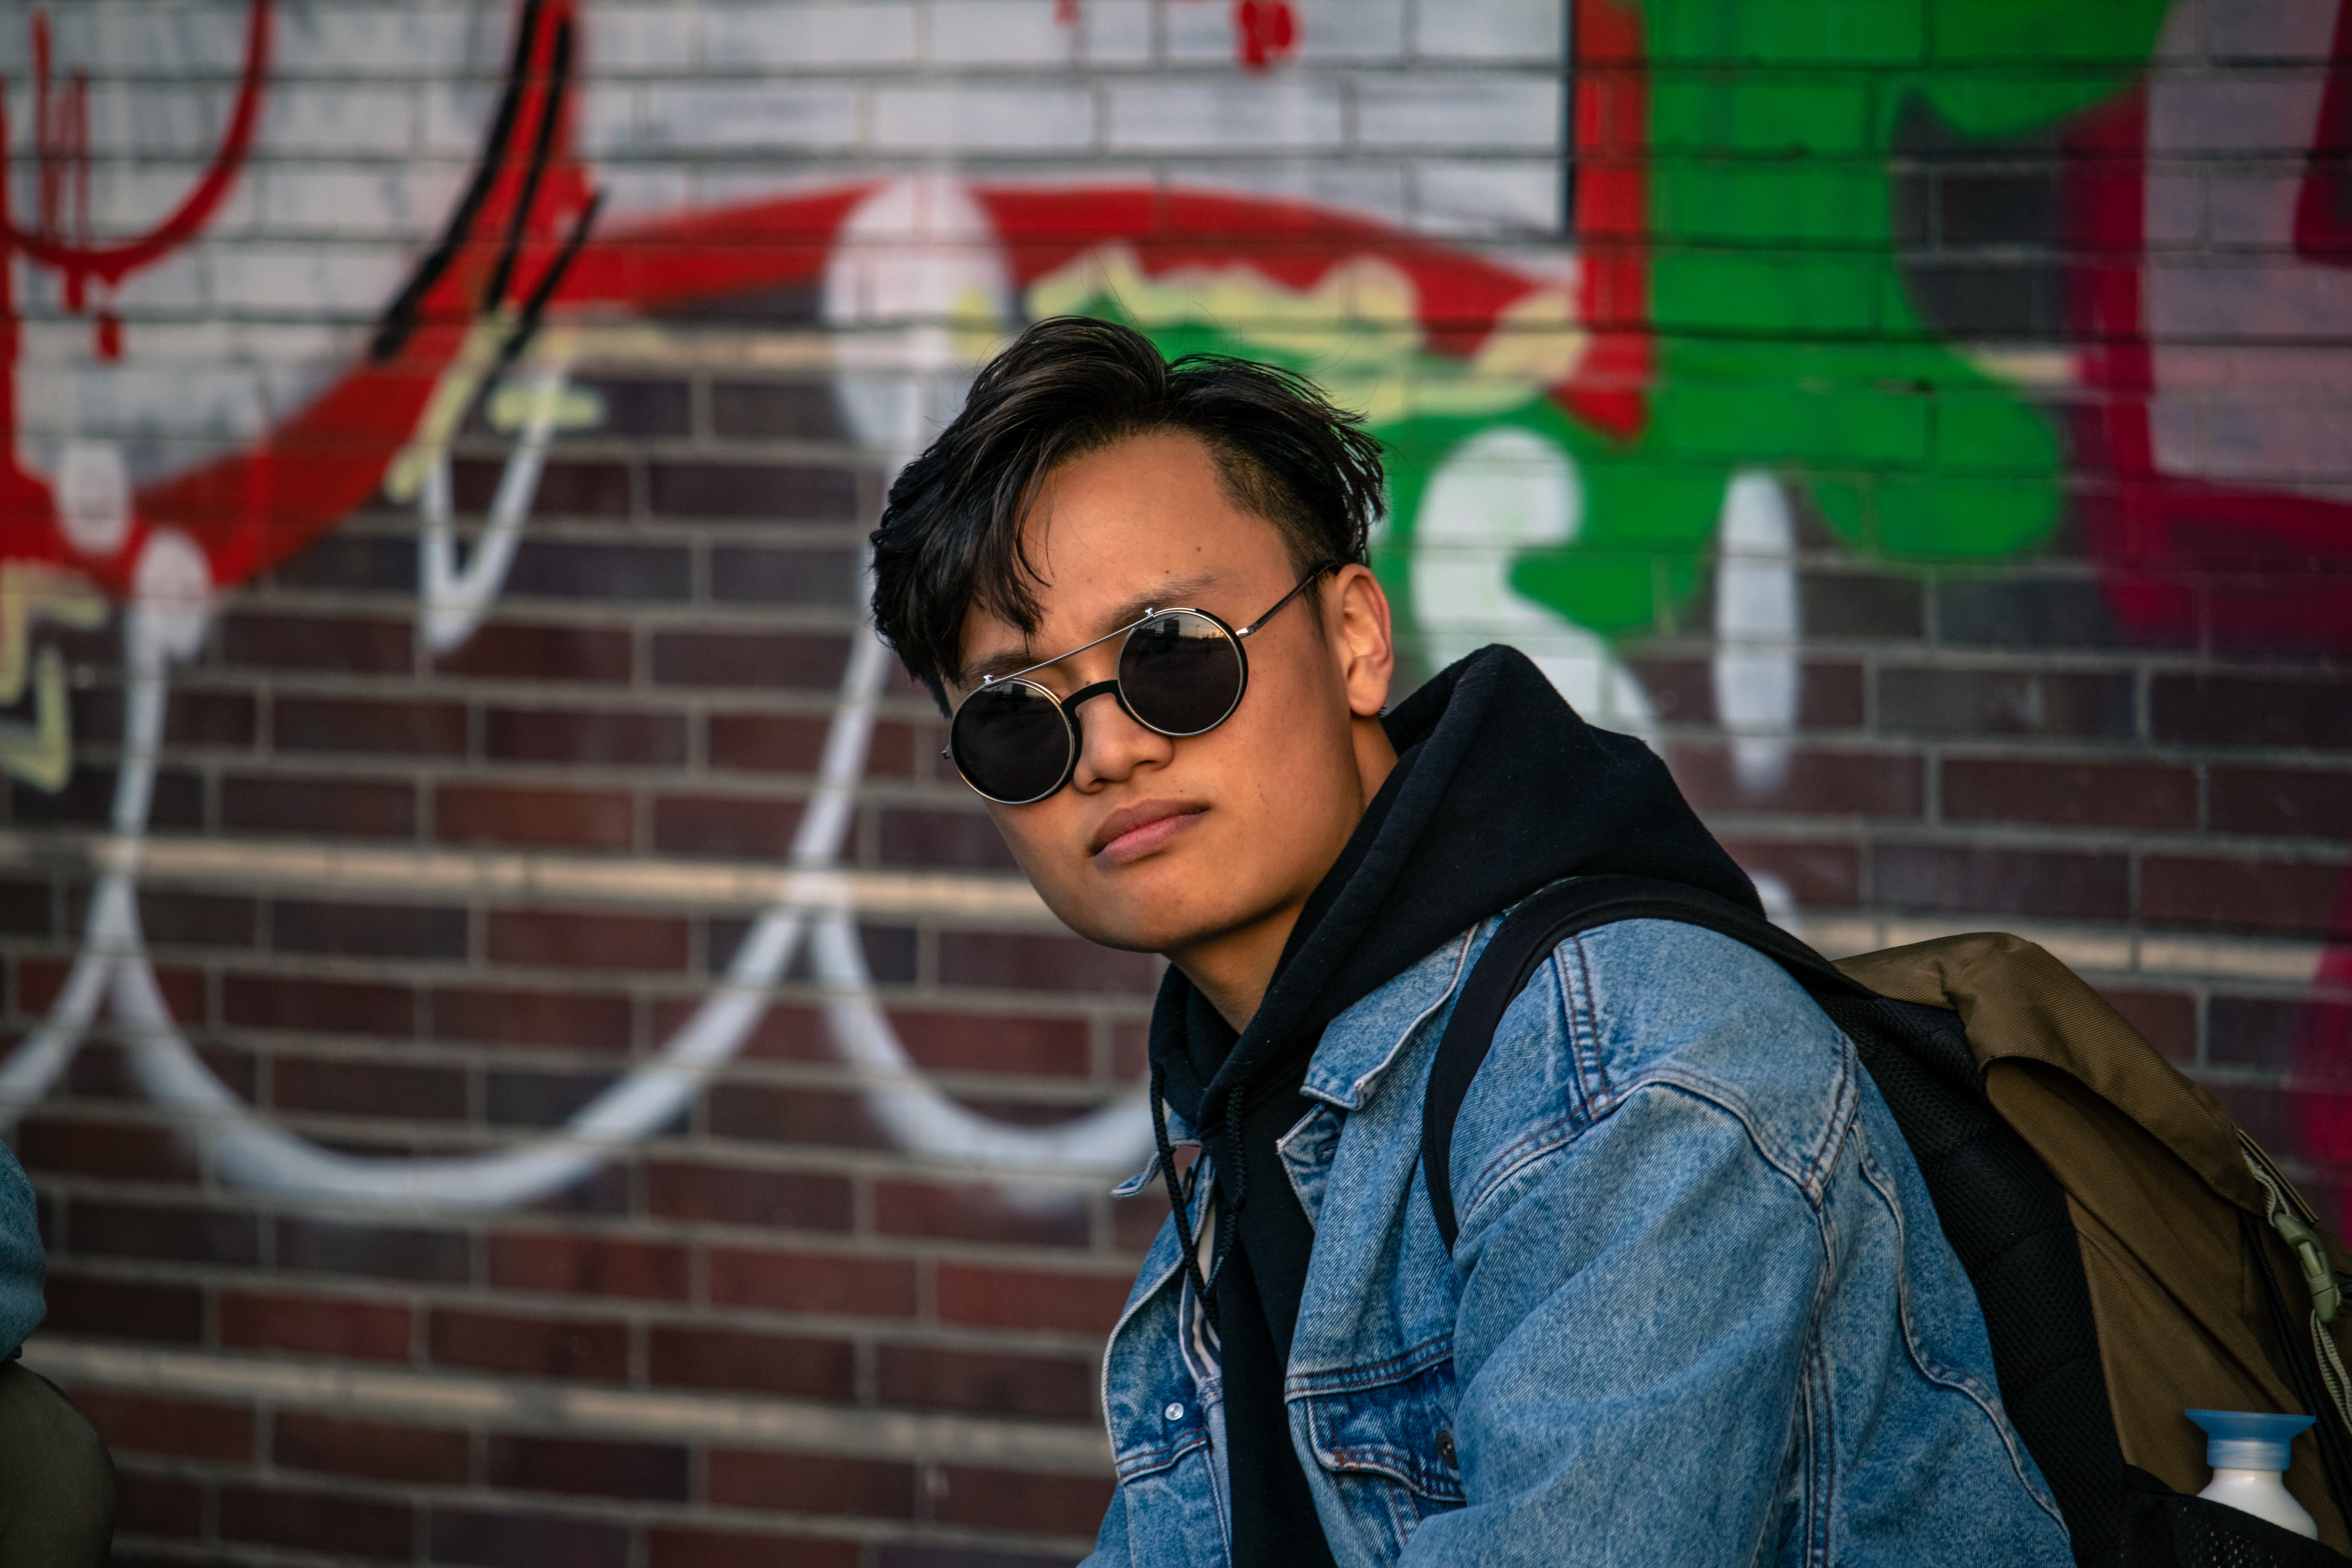 man in black sunglasses and blue denim jacket standing in front of wall